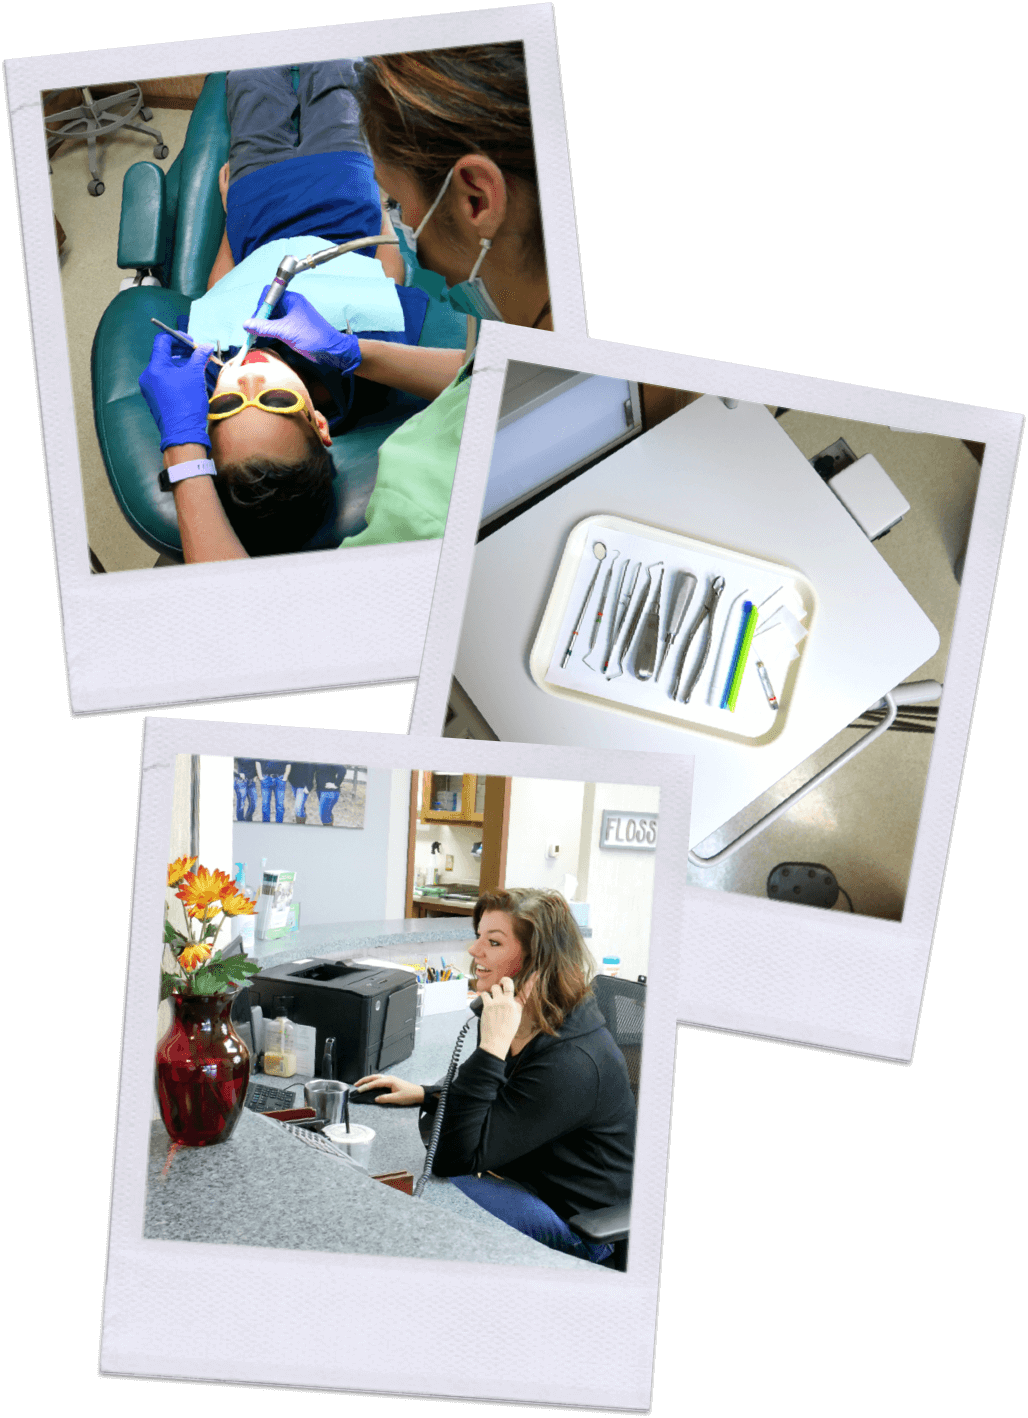 Dental tools, Front end manager, Tessa Davies and young boy getting teeth cleaned by Andrea Blanco, Dental assistant.